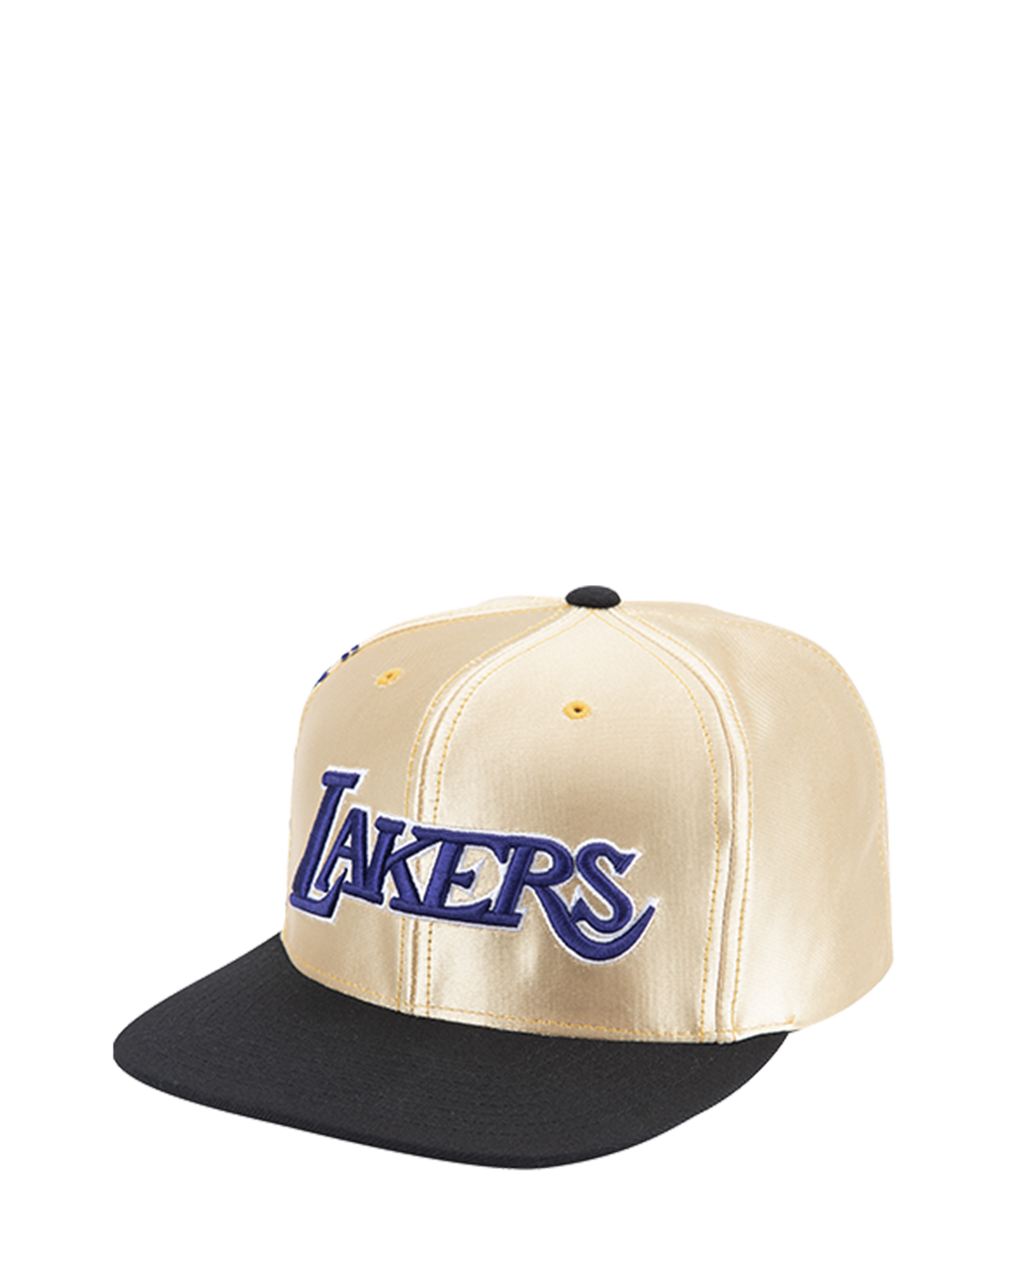 Los Angeles Lakers Onmi Branded Snapback Cap - Gold/Black